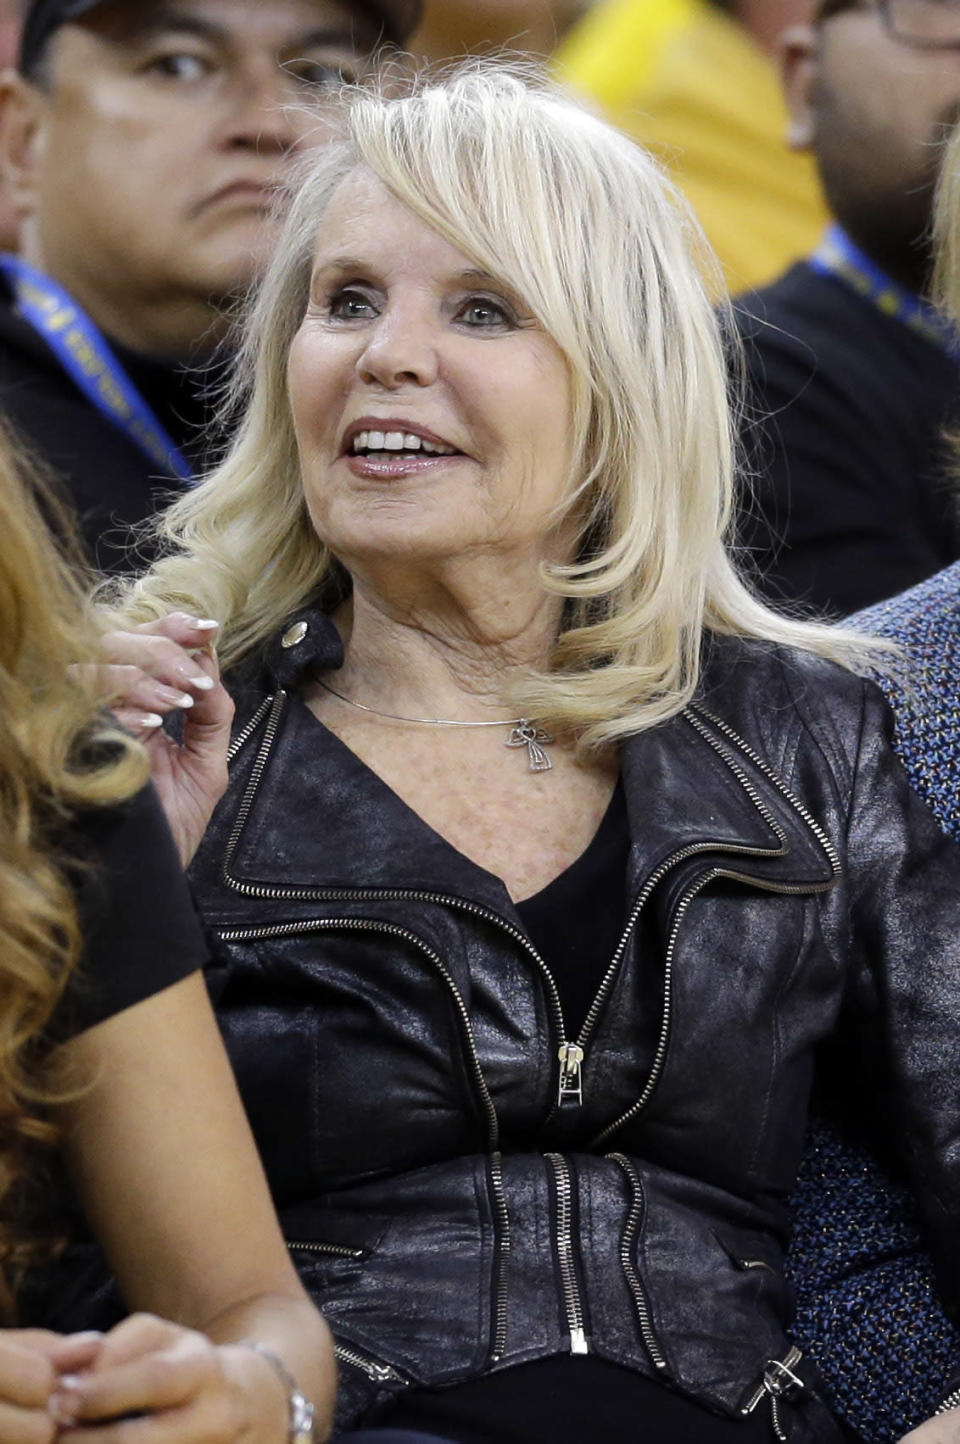 Shelley Sterling, wife of Los Angeles Clippers owner Donald Sterling, watches from a court side seat during the second half in Game 4 of an opening-round NBA basketball playoff series between the Clippers and Golden State Warriors on Sunday, April 27, 2014, in Oakland, Calif. Golden State won 118-97. (AP Photo/Marcio Jose Sanchez)